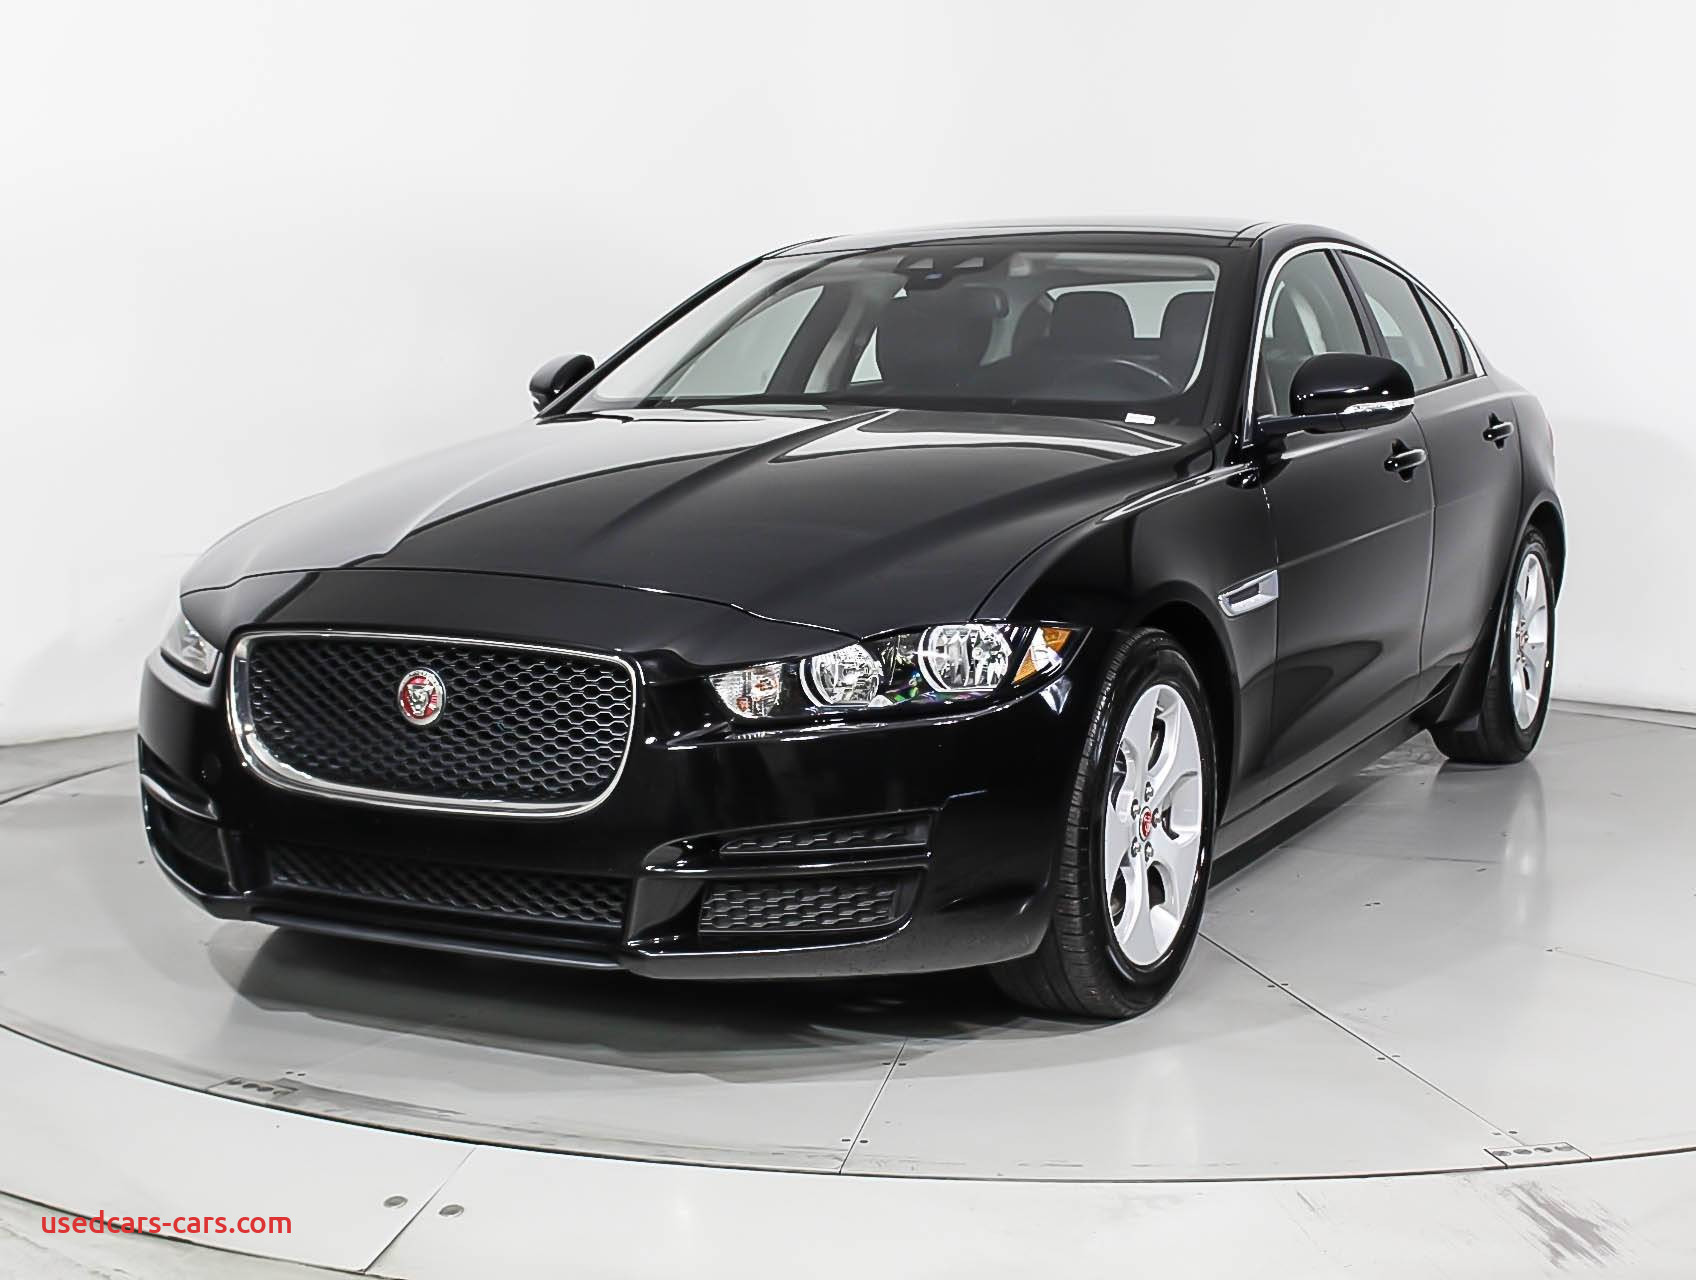 Used Cars for Sale 63376 Luxury Jaguar Xf for Sale Nz